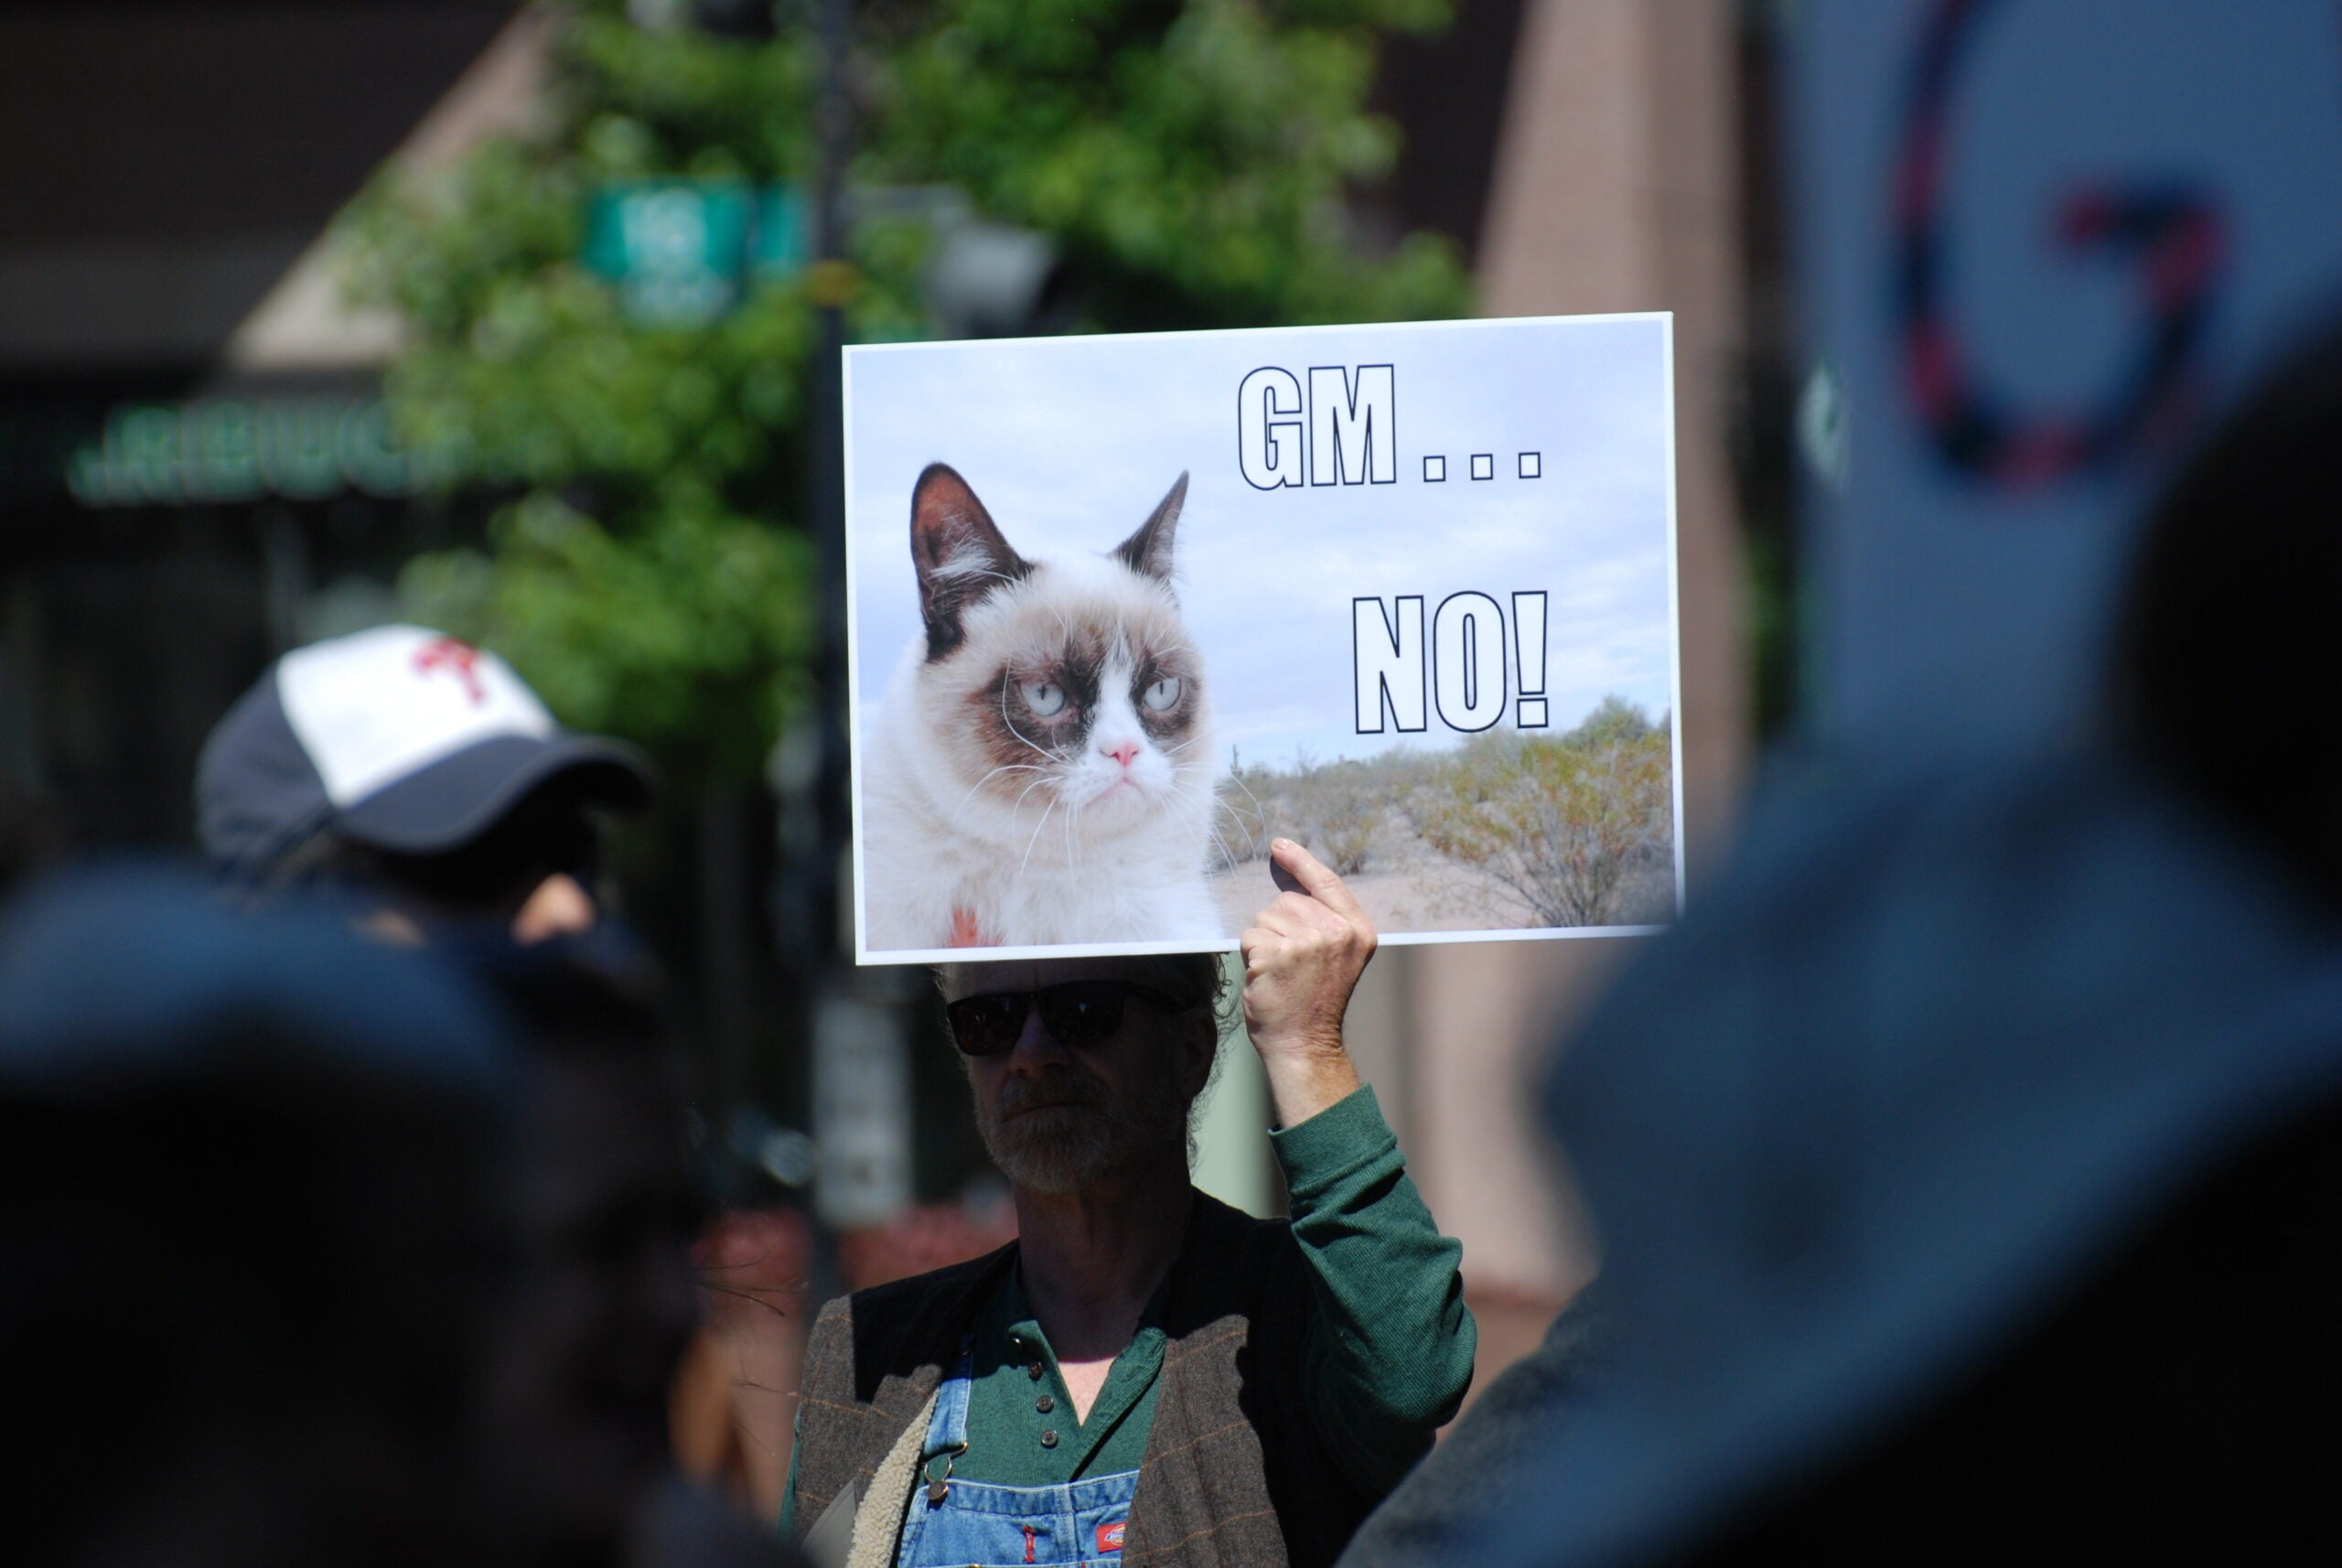 Anti-GMO protester holding a sign of Grumpy Cat saying GM NO